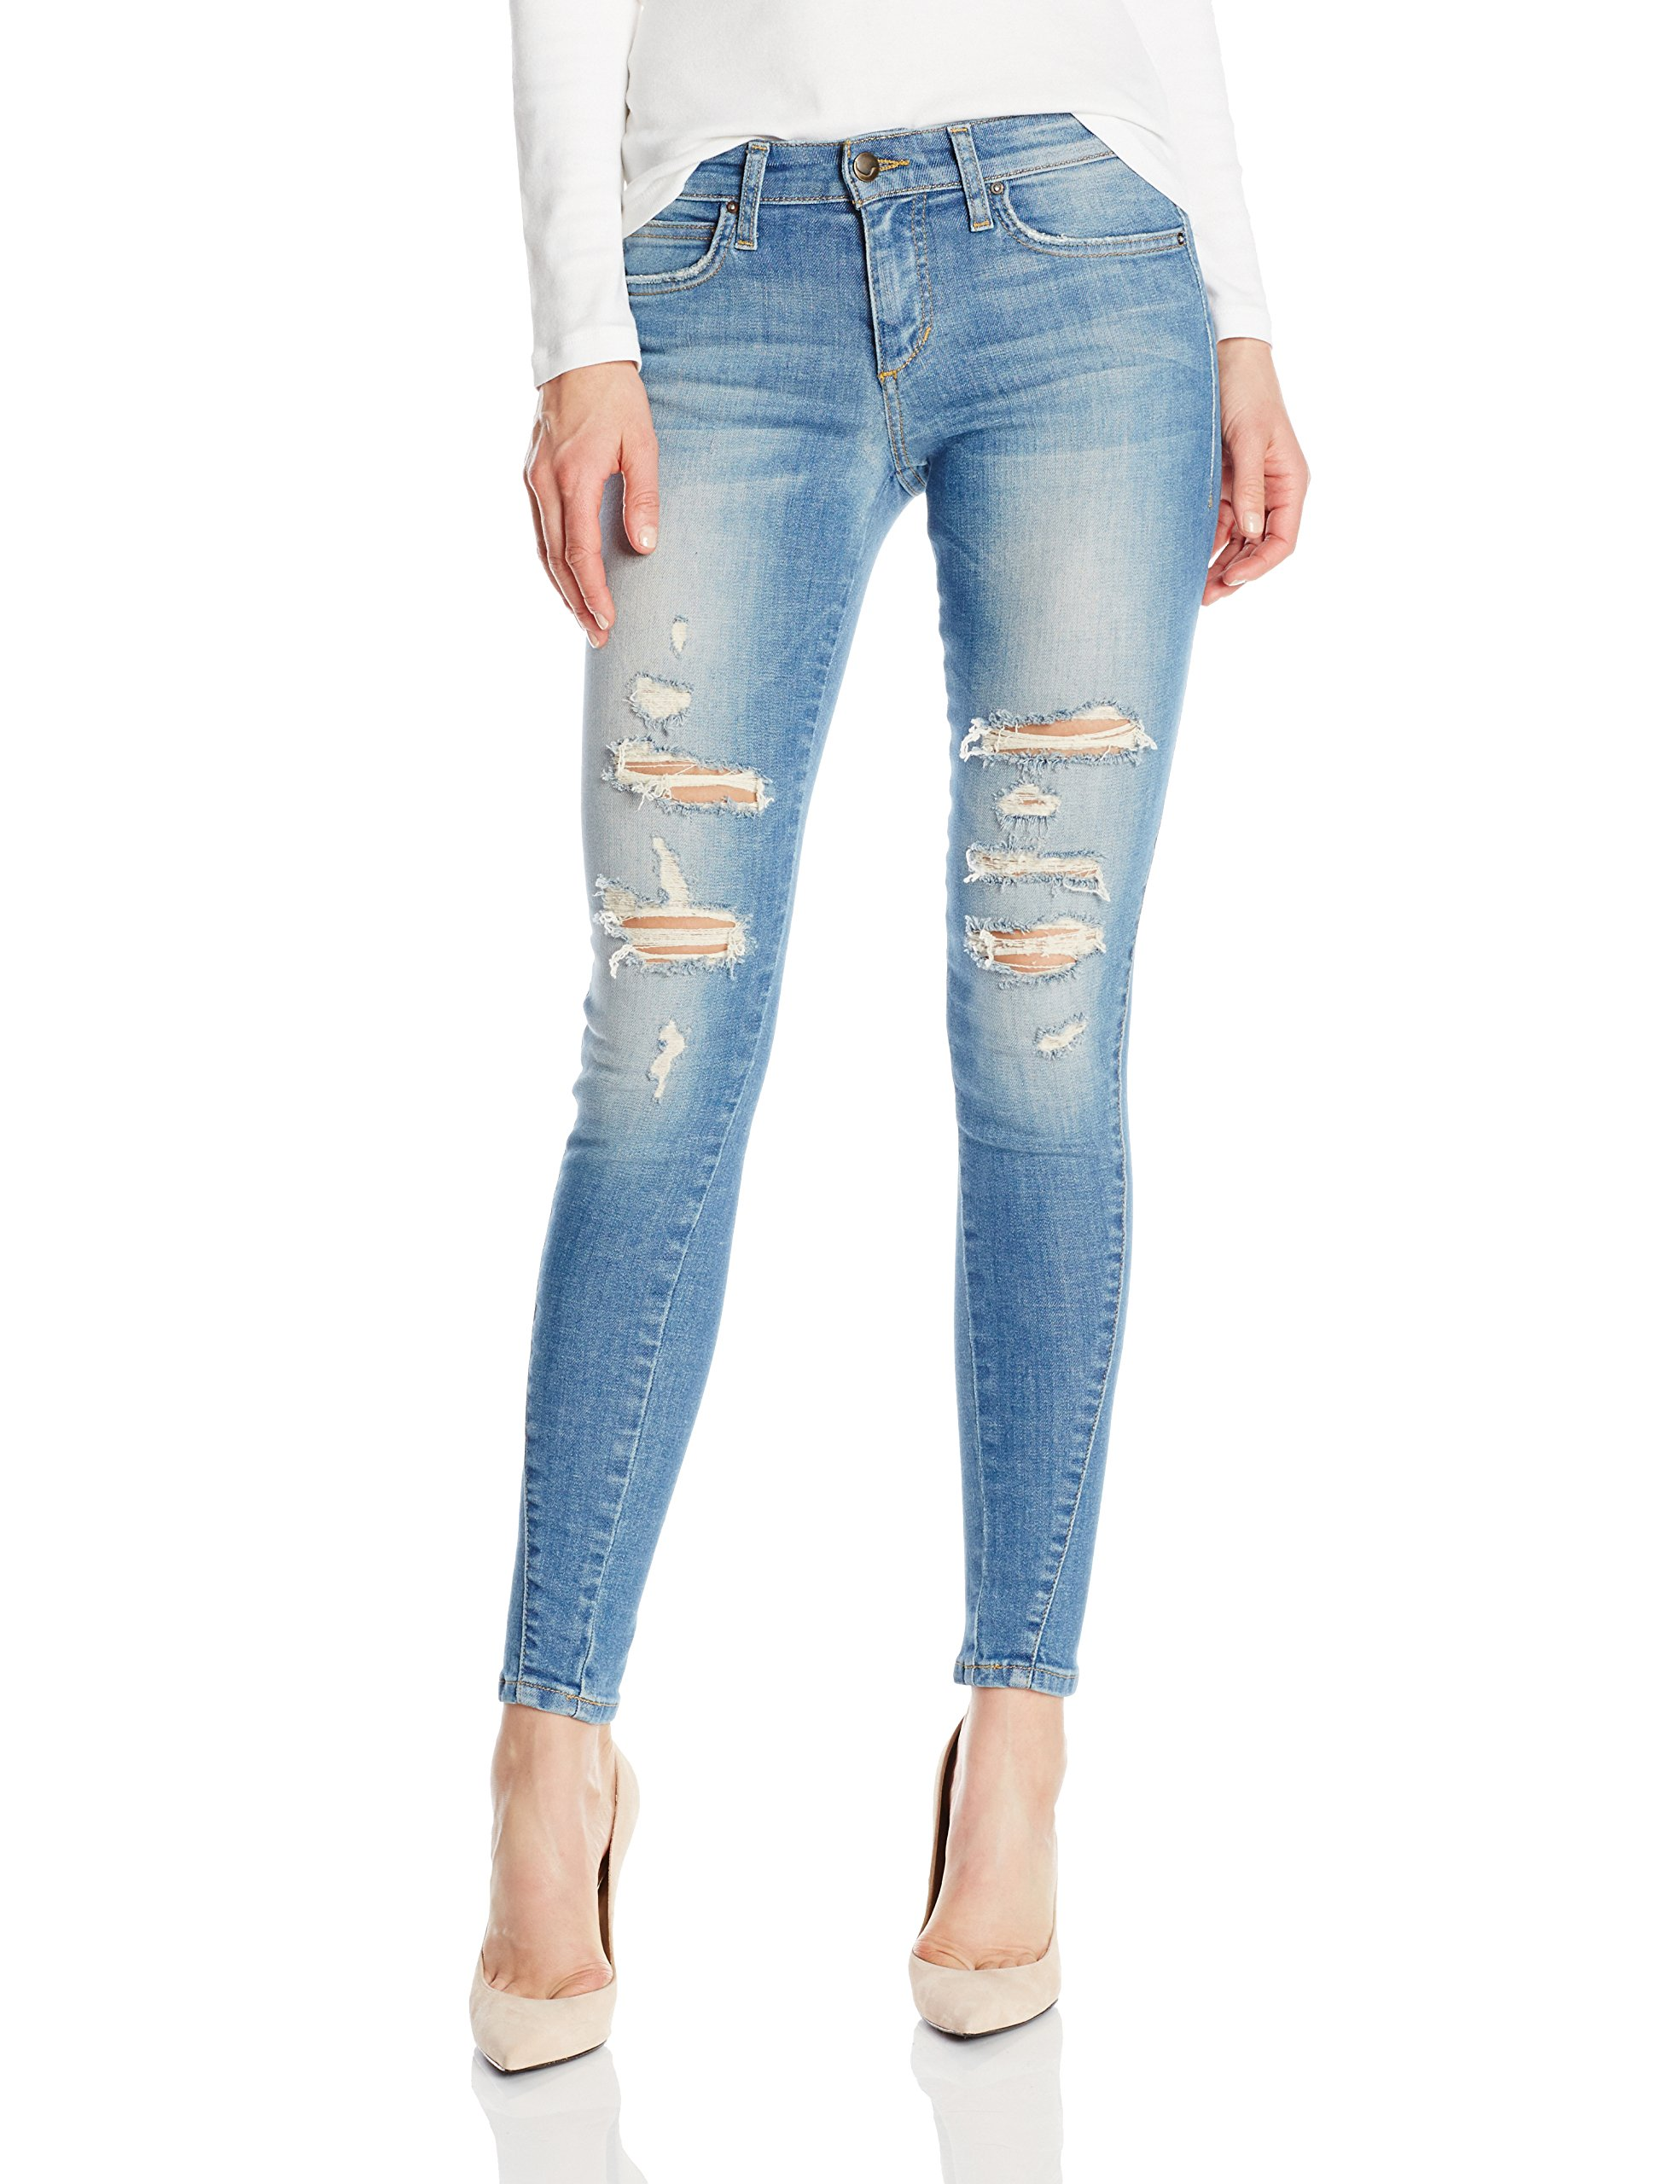 Juniors YMI® Mid rise crosshatch distressed detail 2 button cuff hem jeans with contoured seams for a firmer look, 5 pocket styling, belt loops, stretch denim material and a skinny leg with a 27 inch inseam. 69% Cotton, 27% Polyester, 2% Rayon, 2% Spandex.